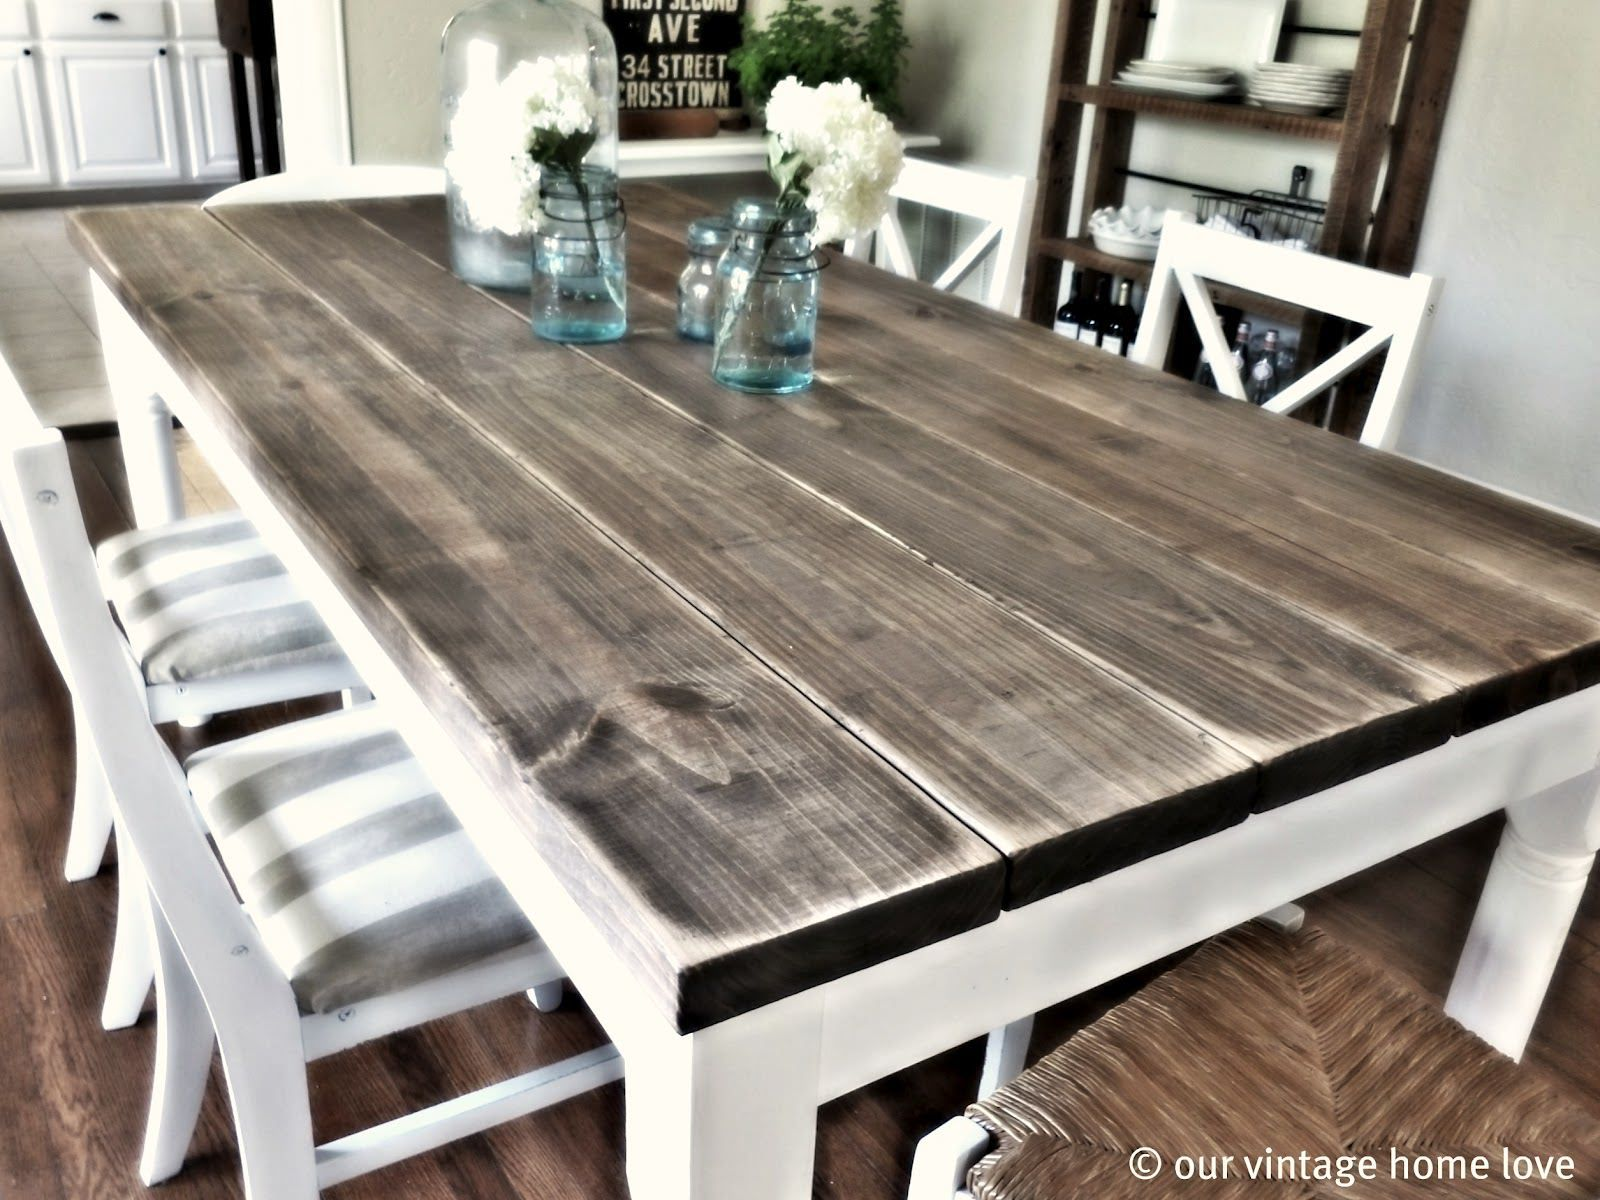 Wooden Kitchen Table Refacing Cabinets Before And After Pin By Brett Schutt On Tables Pinterest Dining Room Diy Lovely Wood With 2x8 Boards 4